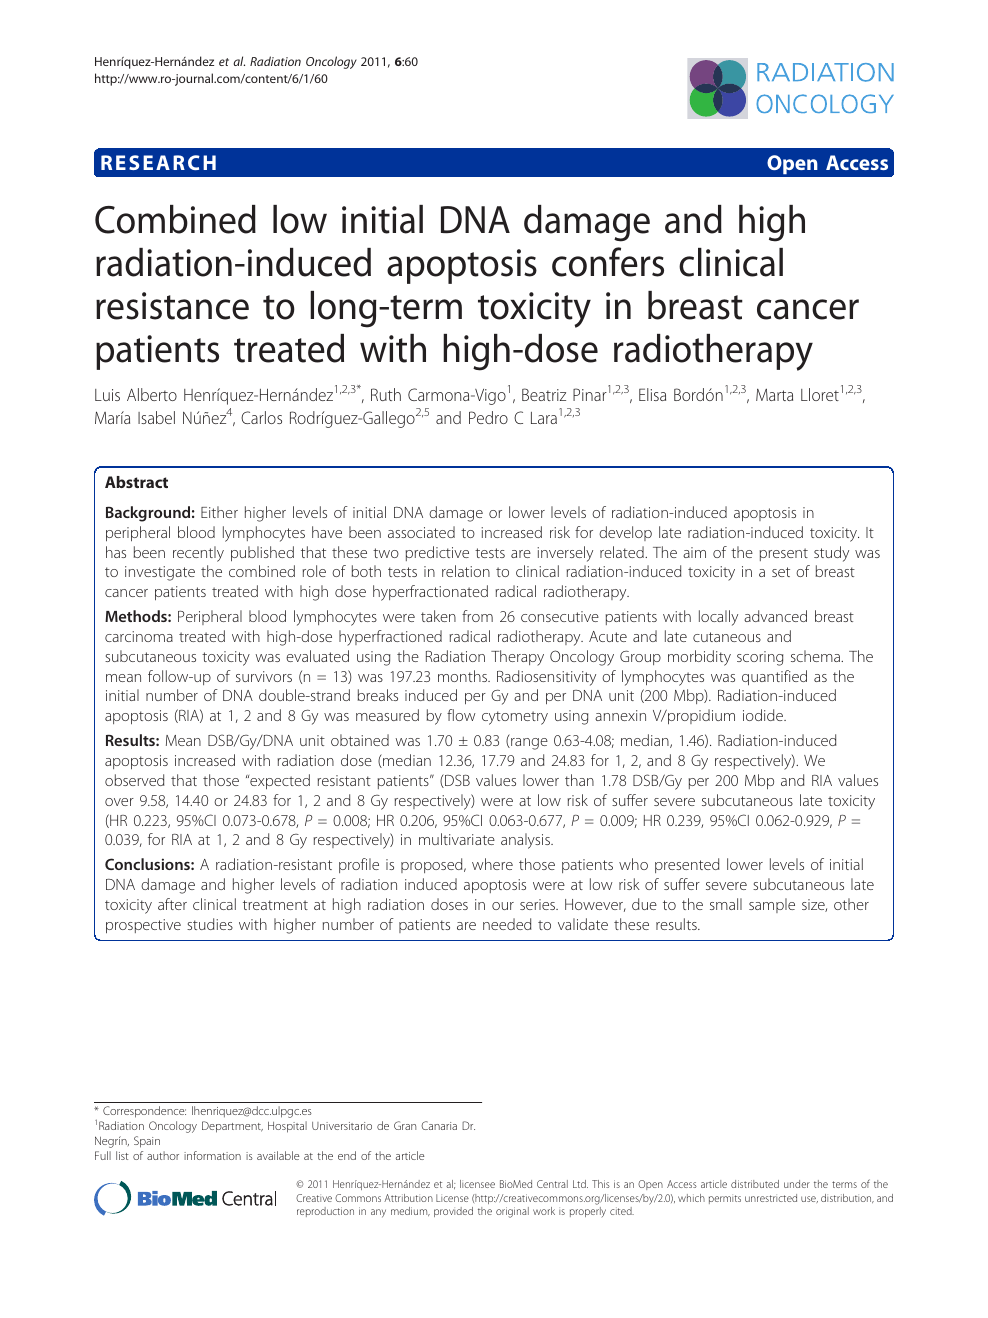 Combined low initial DNA damage and high radiation-induced apoptosis